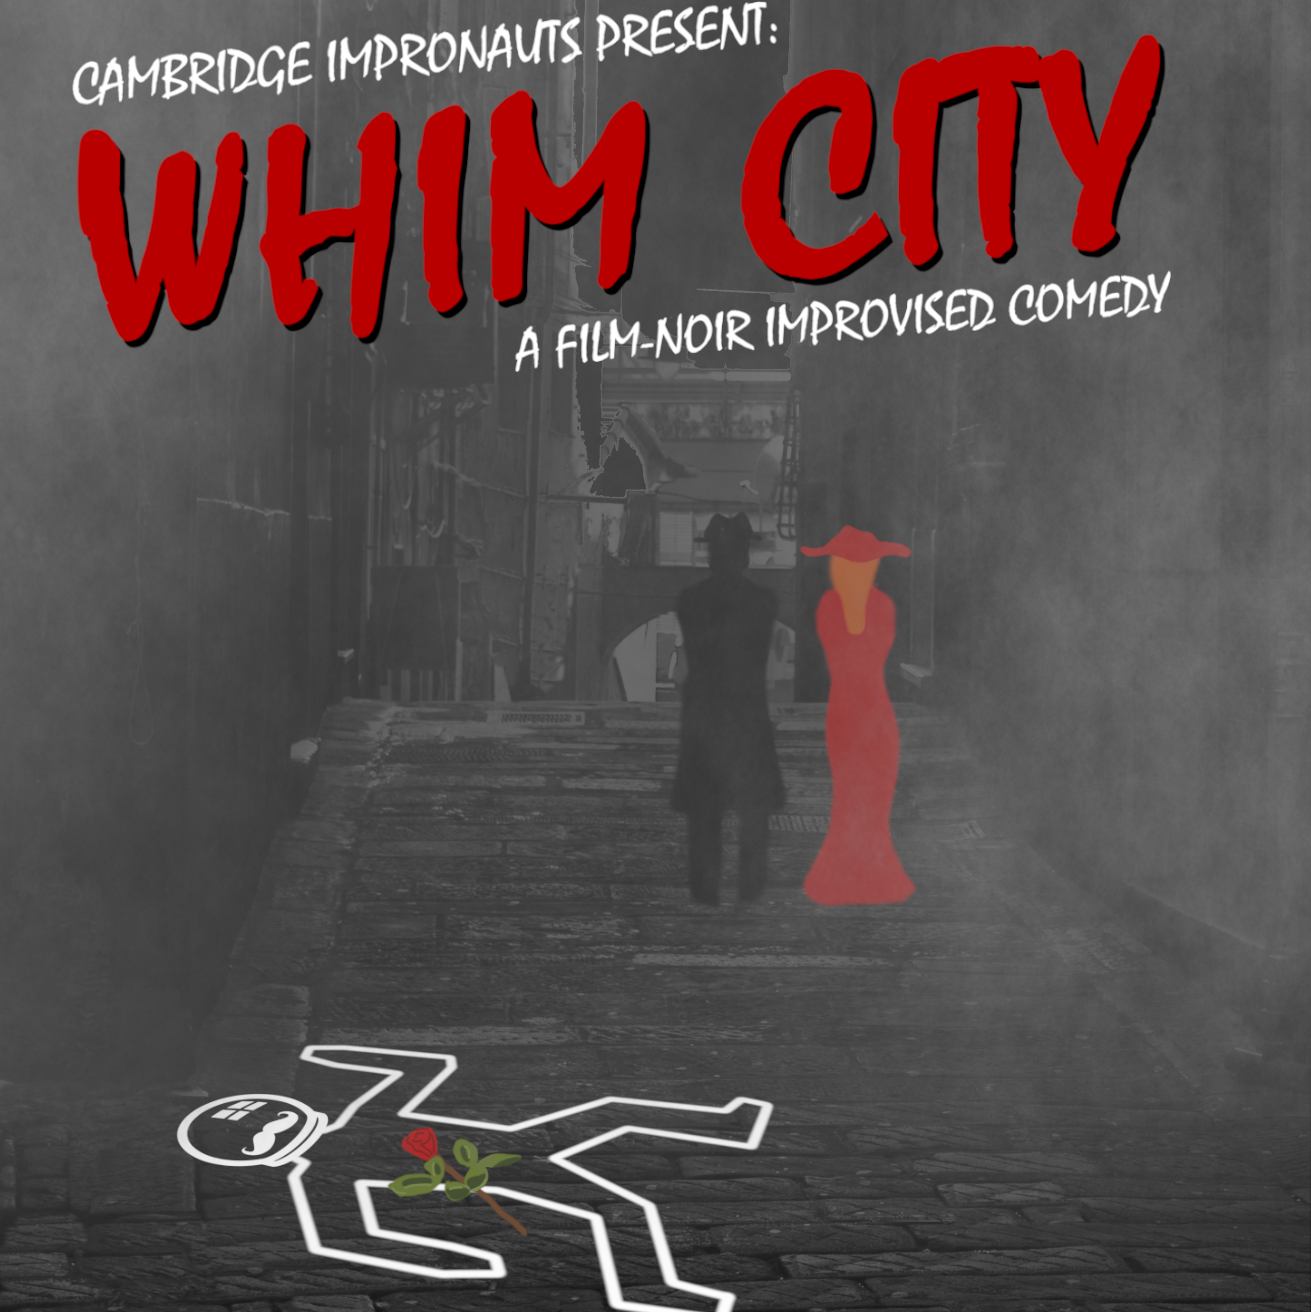 Whim City poster showing a foggy street, a police body outline and a couple walking away